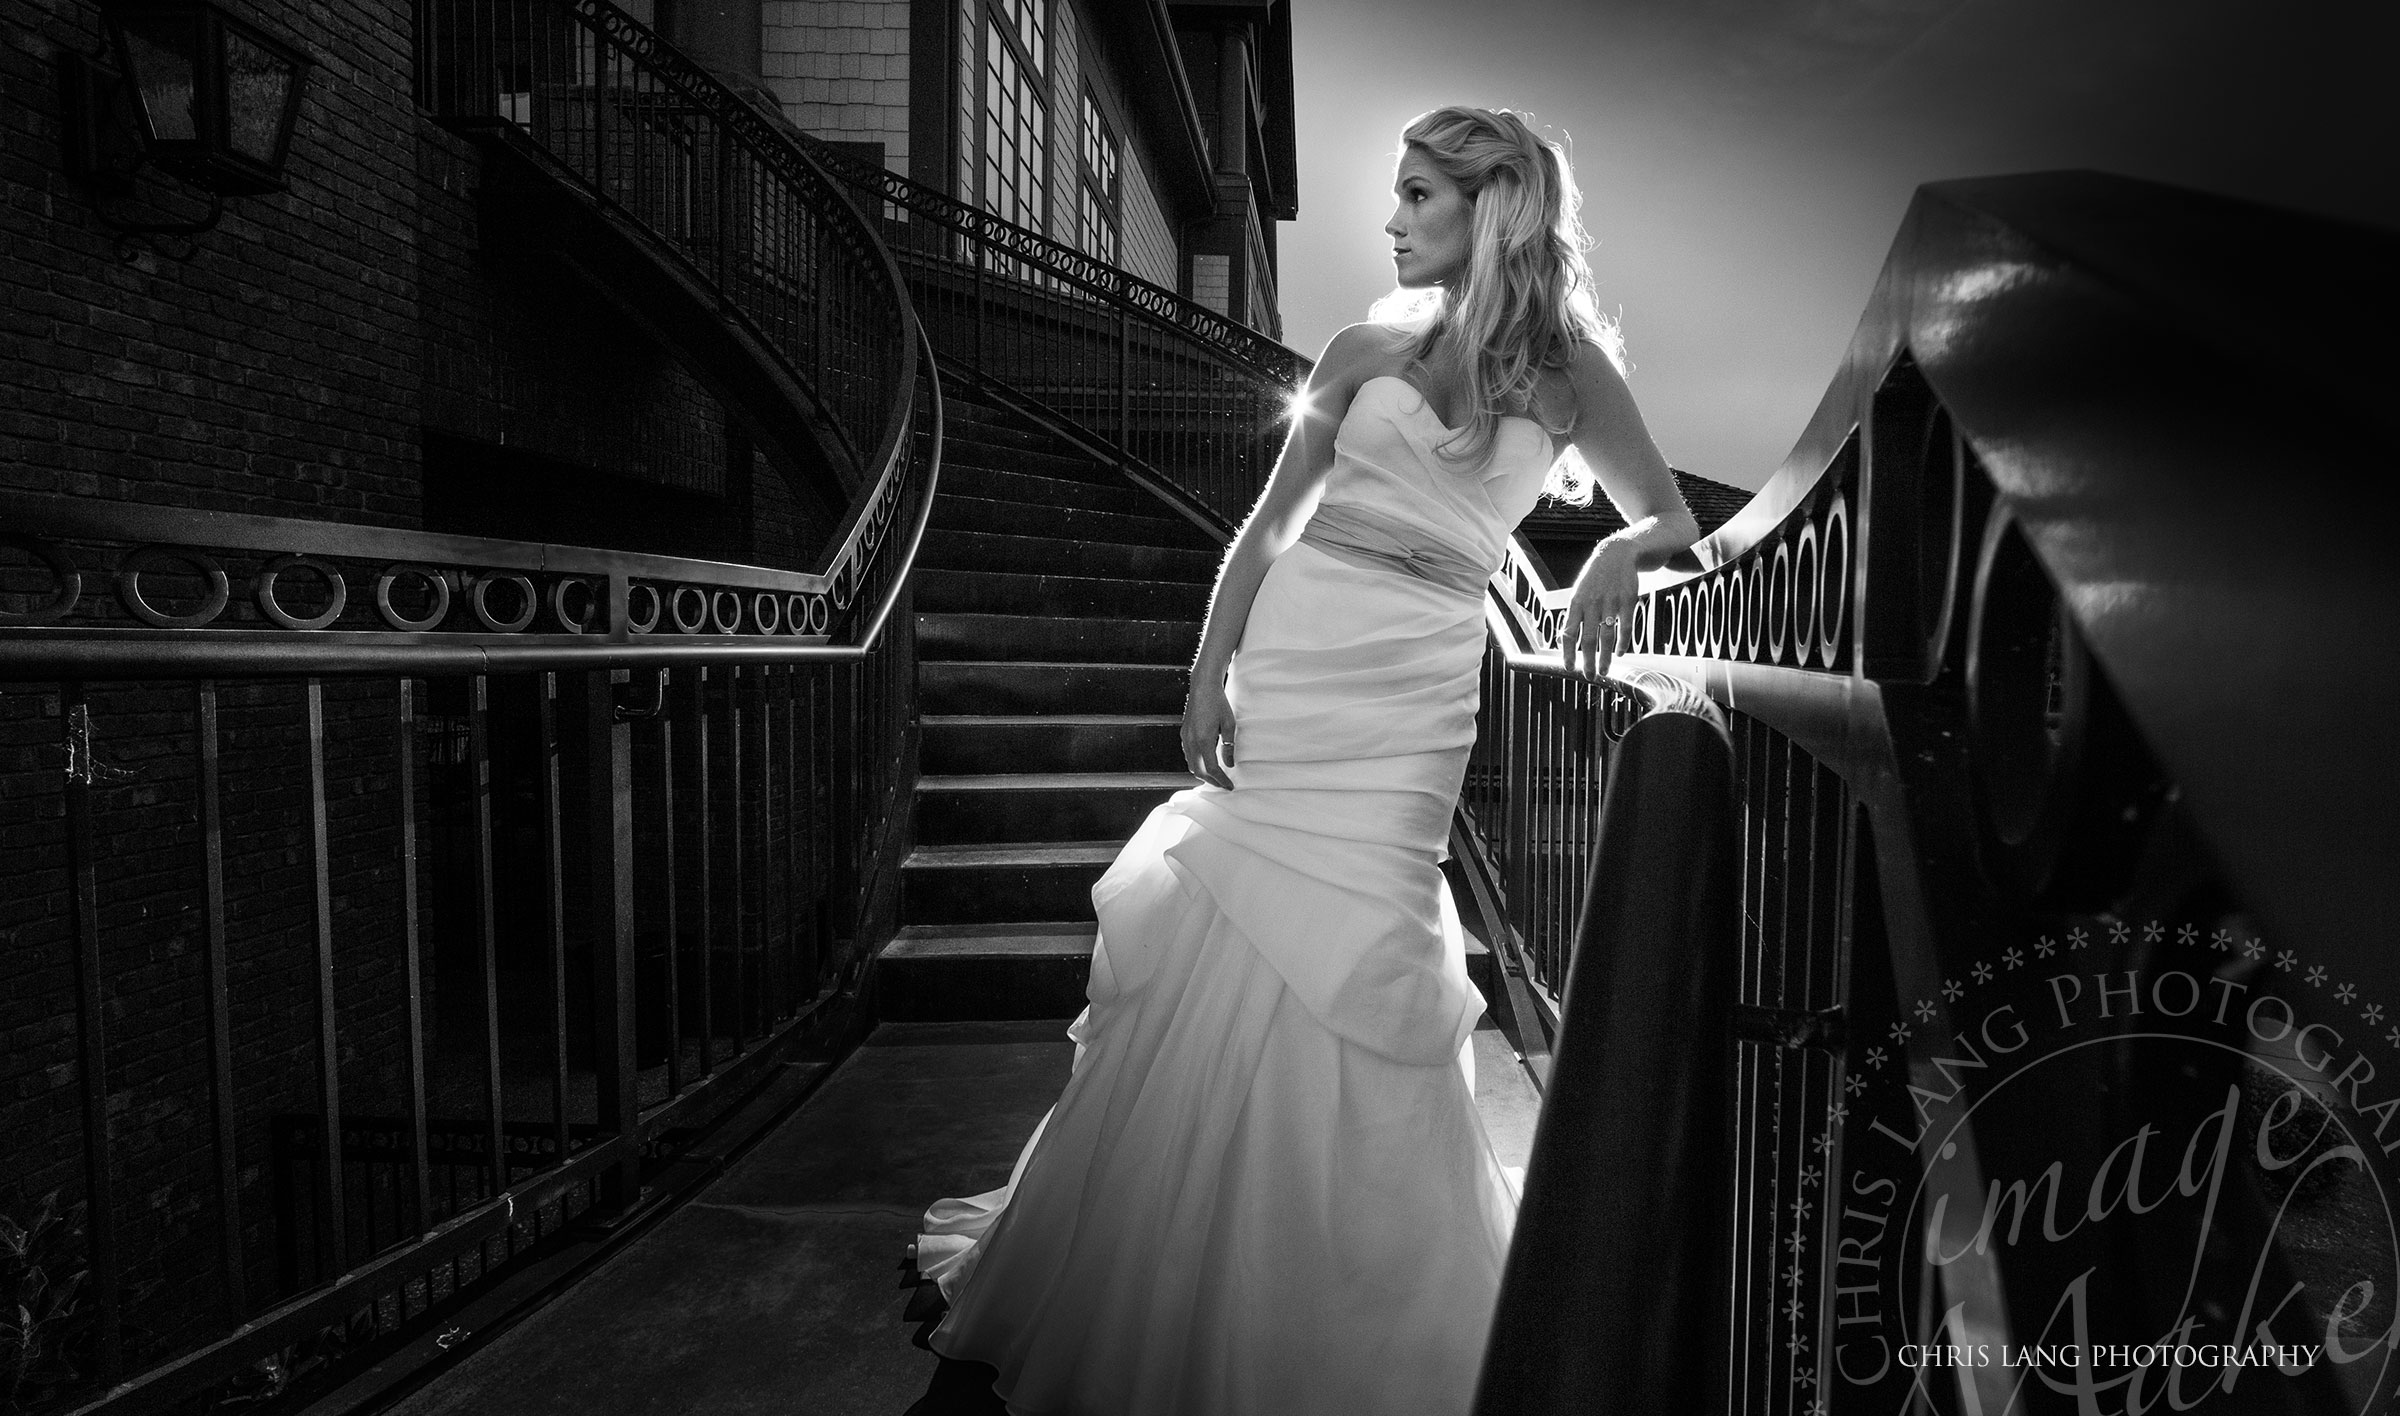 Fine art bridal photography in black and white